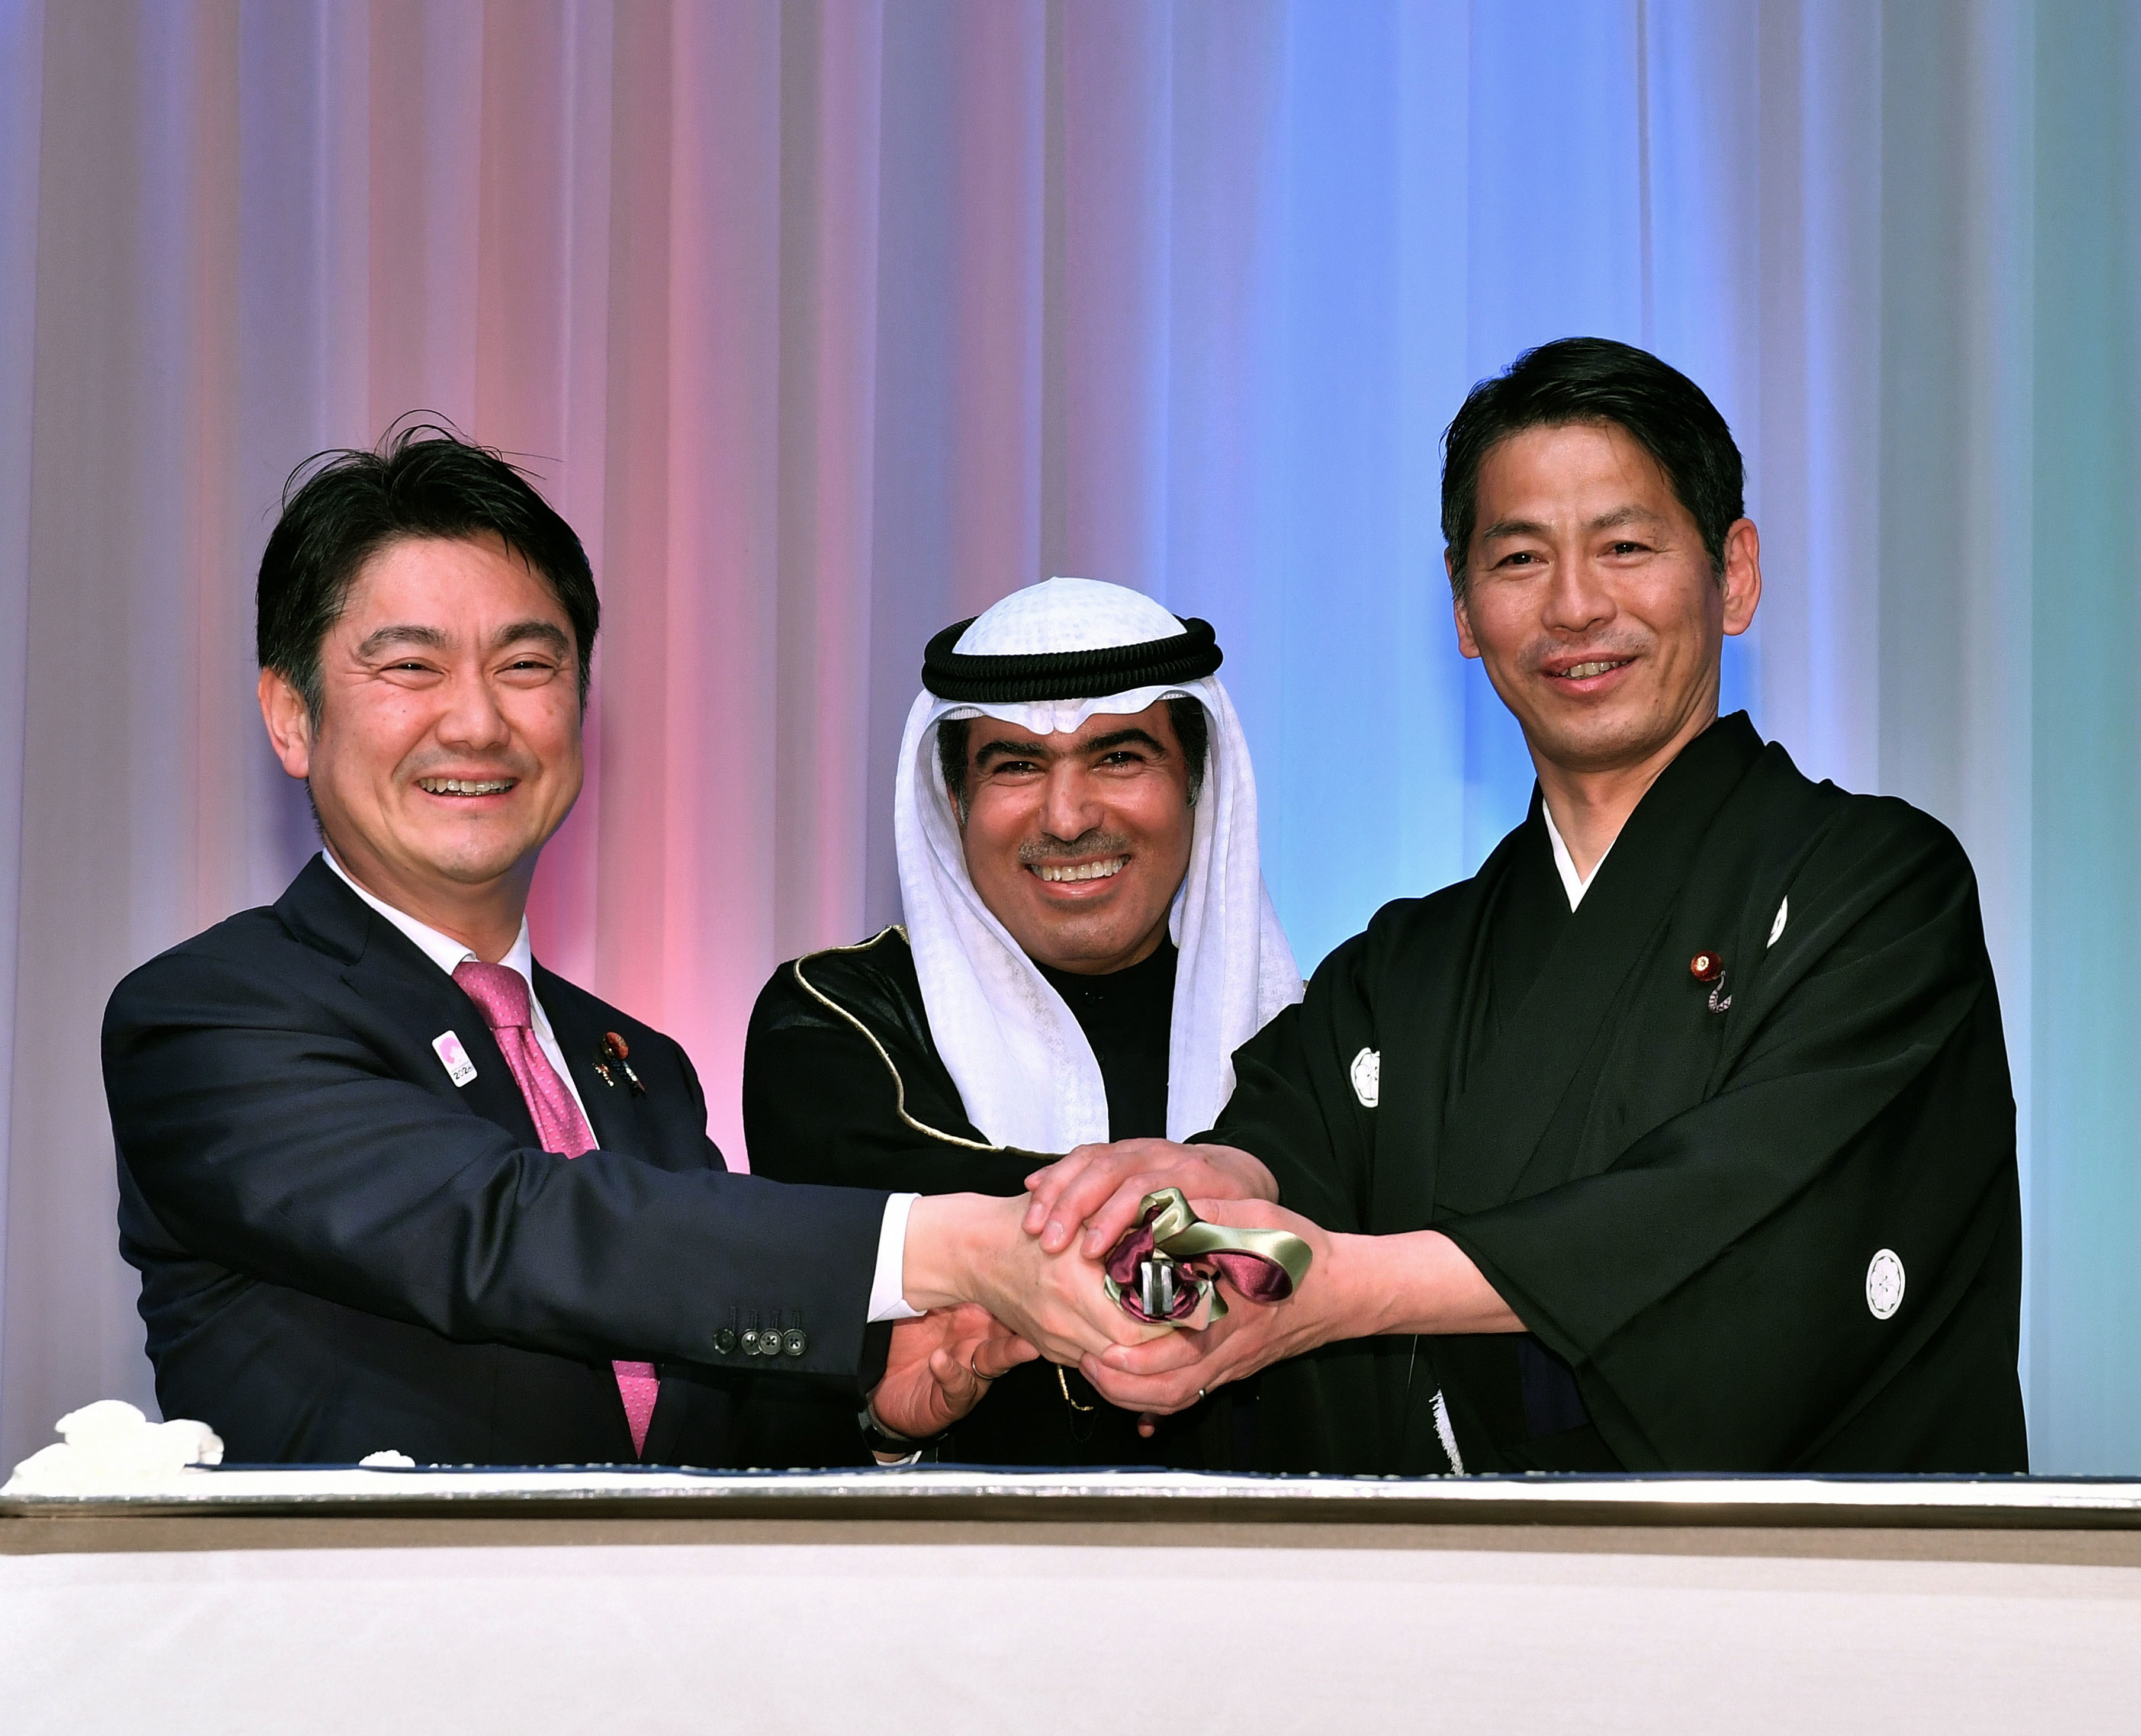 Kuwaiti Ambassador Hasan Mohammad Zaman (center) poses with Justice Minister and Chief Secretary of the Japan-Kuwait Parliamentary Friendship League Takashi Yamashita (left) and Parliamentary Vice-Minister for Foreign Affairs Kenji Yamada during a cake-cutting ceremony to celebrate the 58th national day and 28th independence anniversary of Kuwait at the Palace Hotel Tokyo on Feb. 25. |  YOSHIAKI MIURA